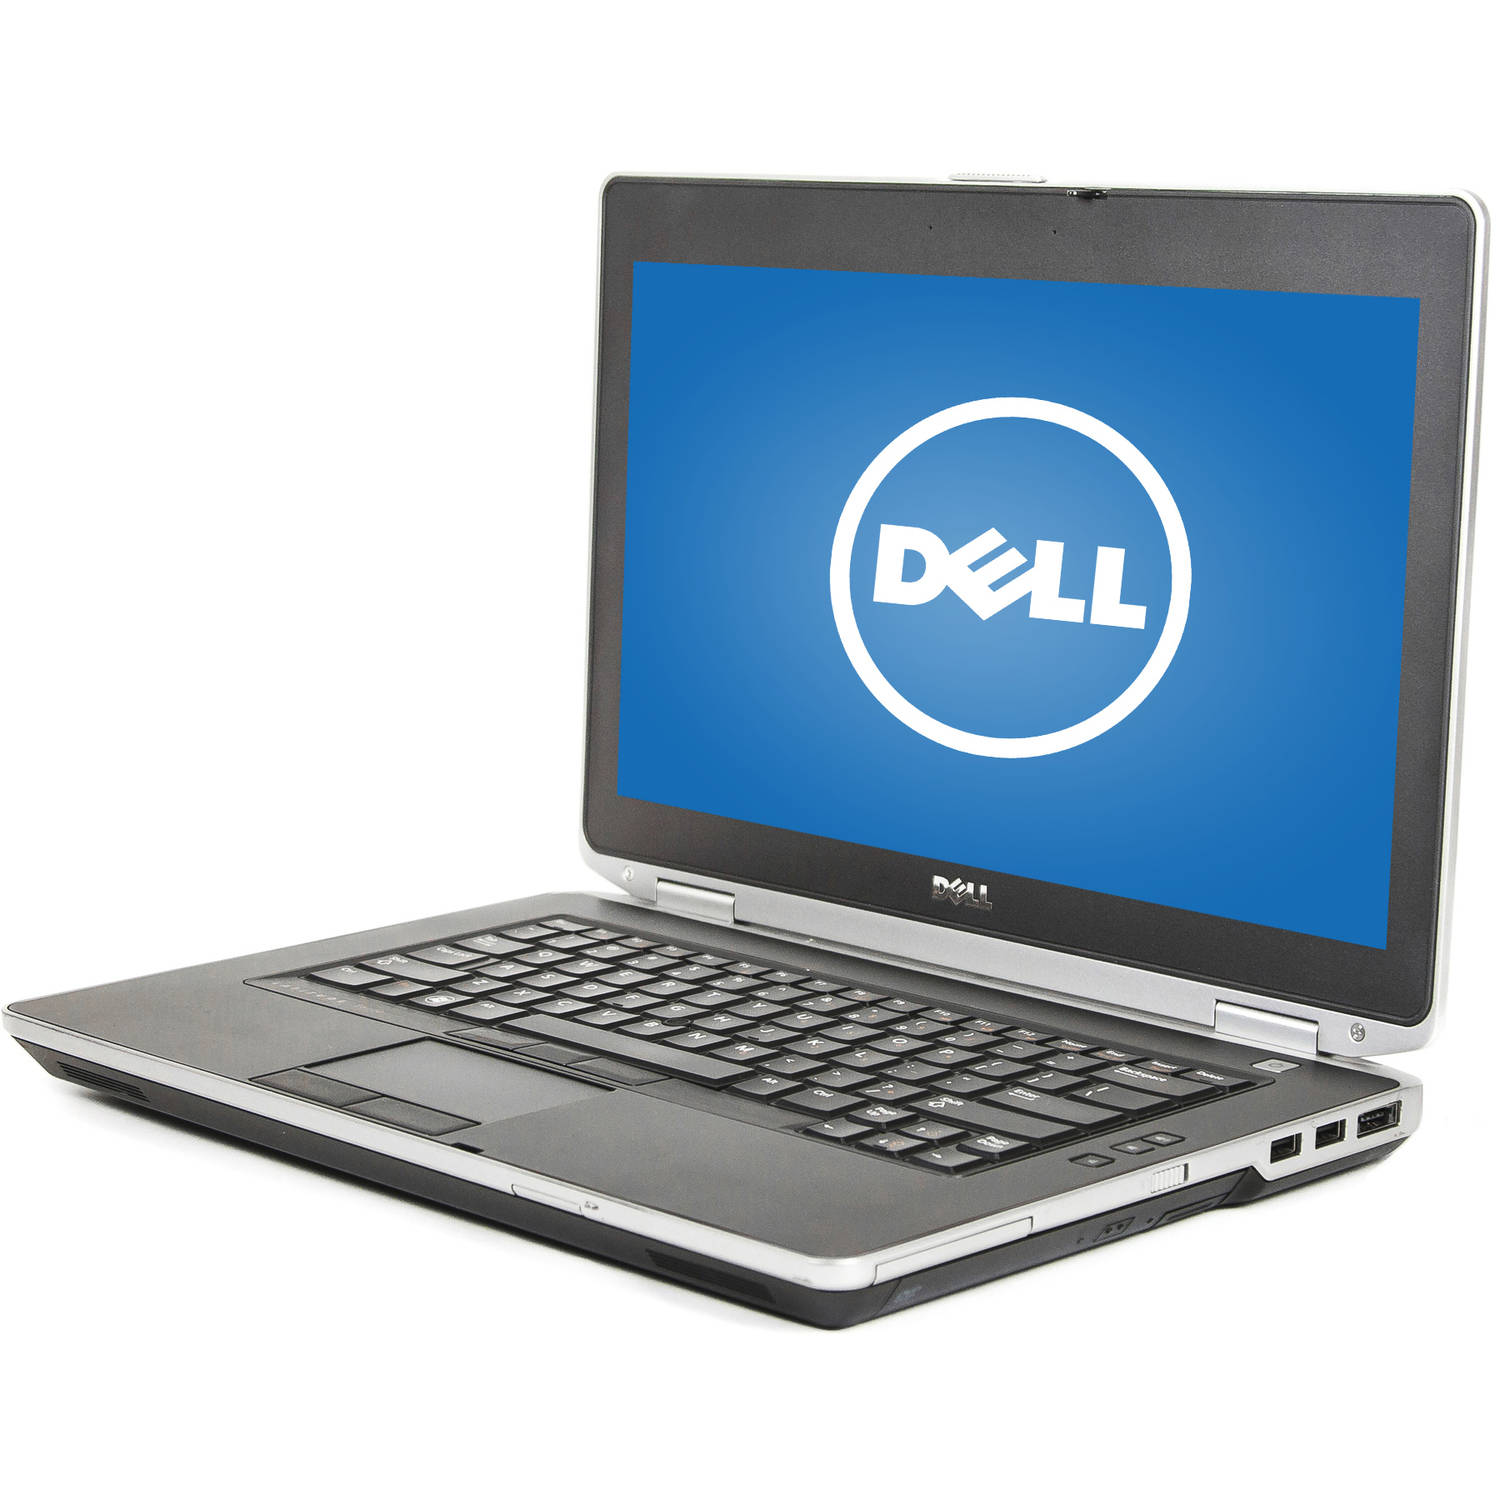 "Refurbished Dell Black 14"" E6430 Laptop PC with Intel Core i5-3320M Processor, 8GB Memory, 128GB SSD and Windows 7 Professional"